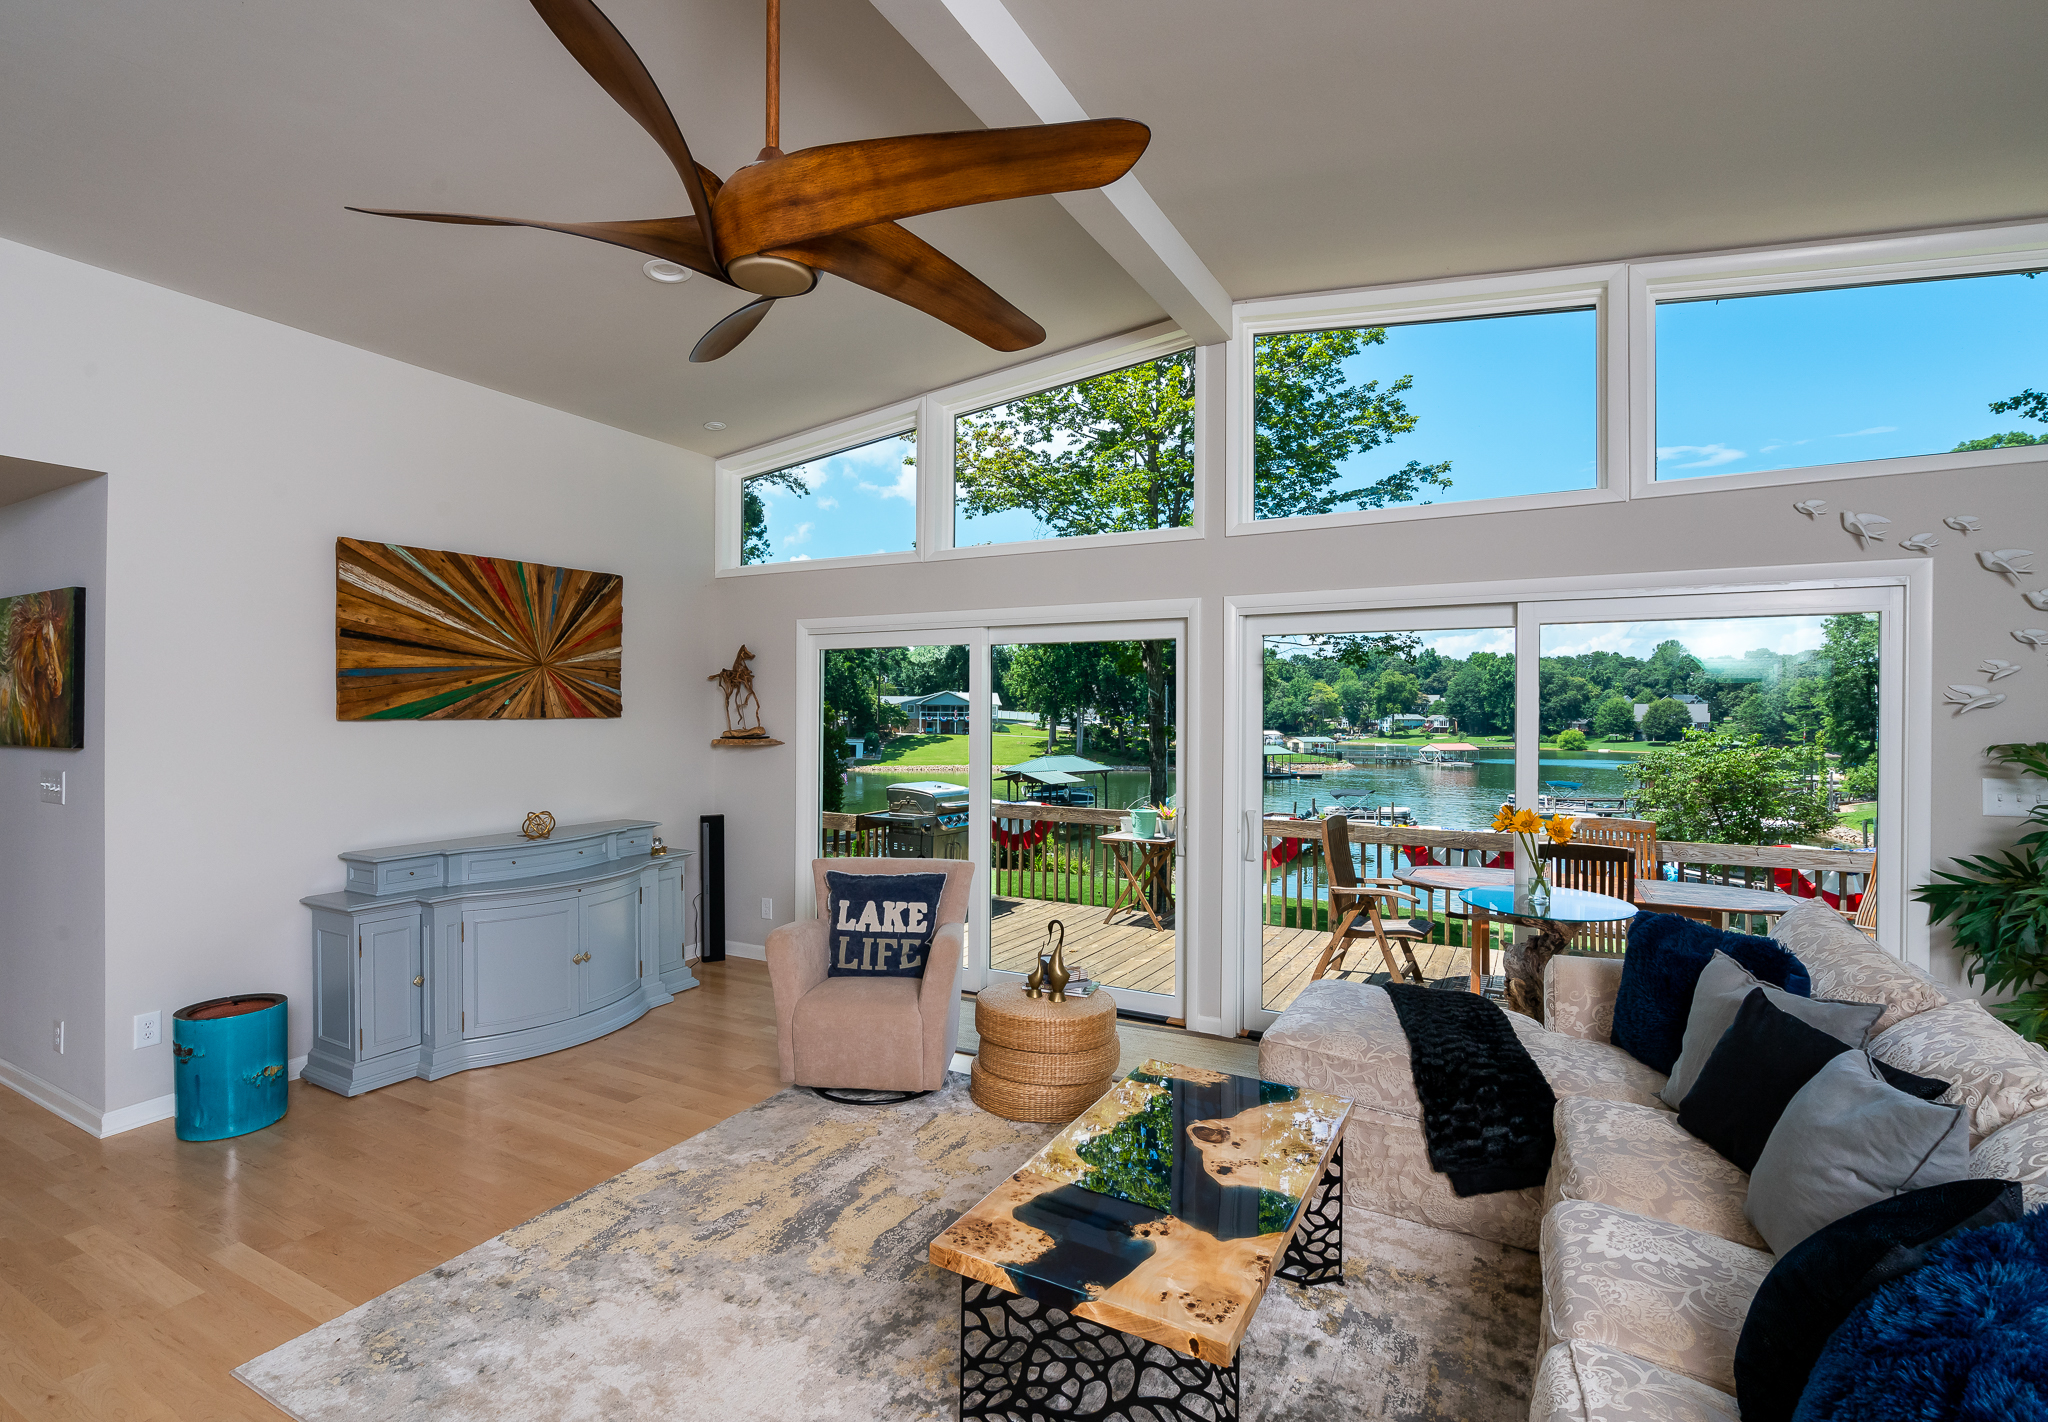 Home Floor Plans: What is Best for Your Family?